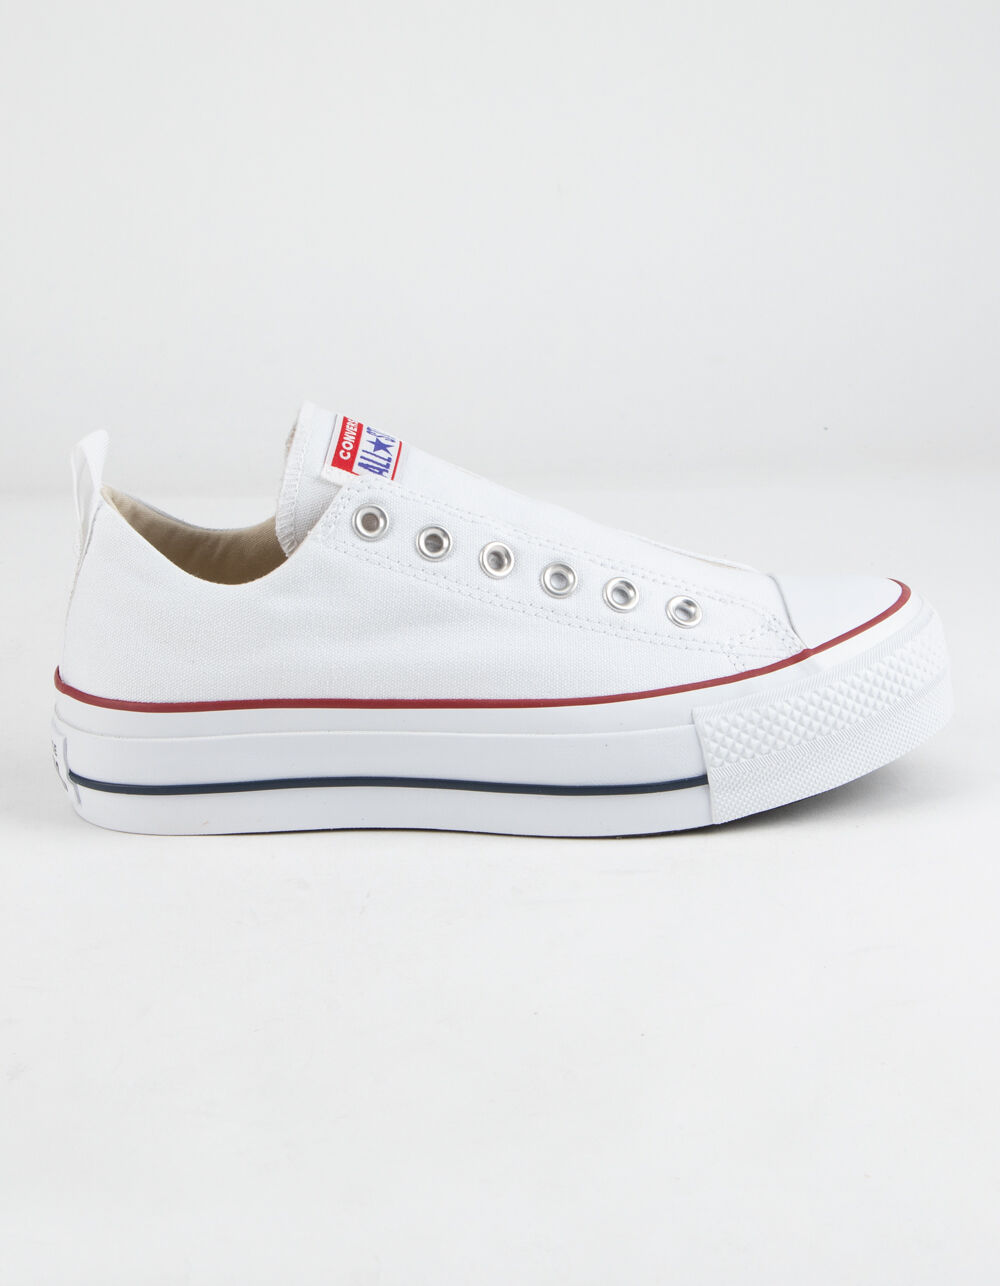 Image of CONVERSE CHUCK TAYLOR ALL STAR PLATFORM SLIP WHITE SHOES